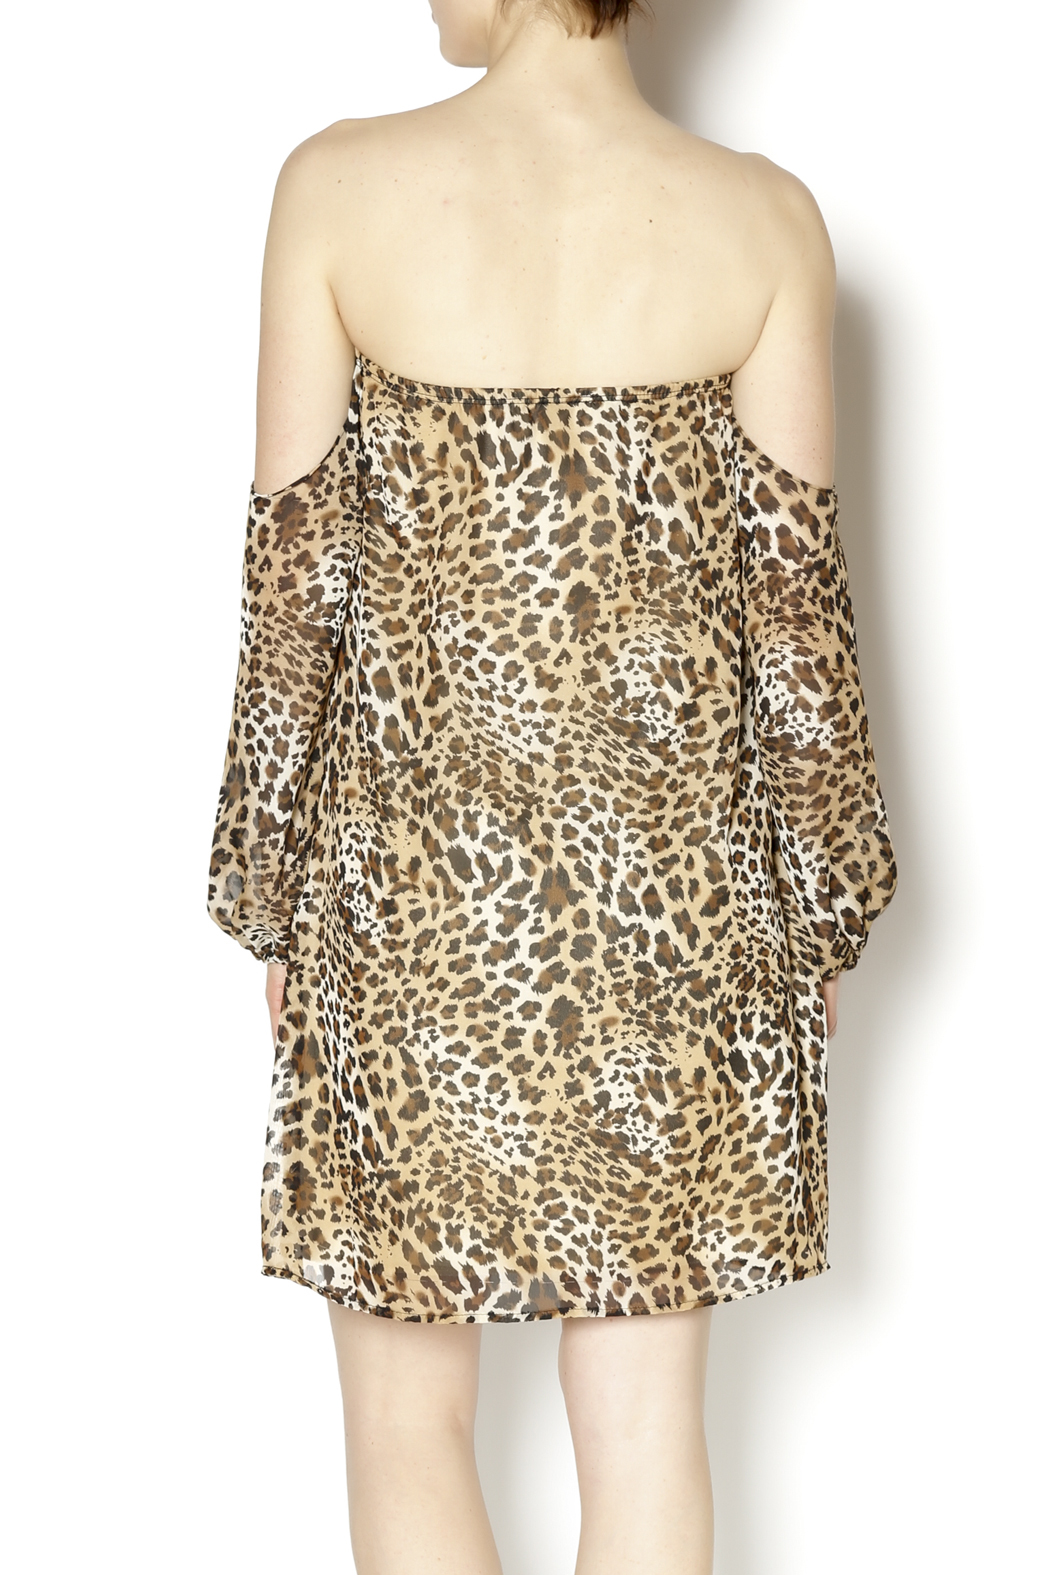 Turquoise Haven Leopard Dress - Back Cropped Image